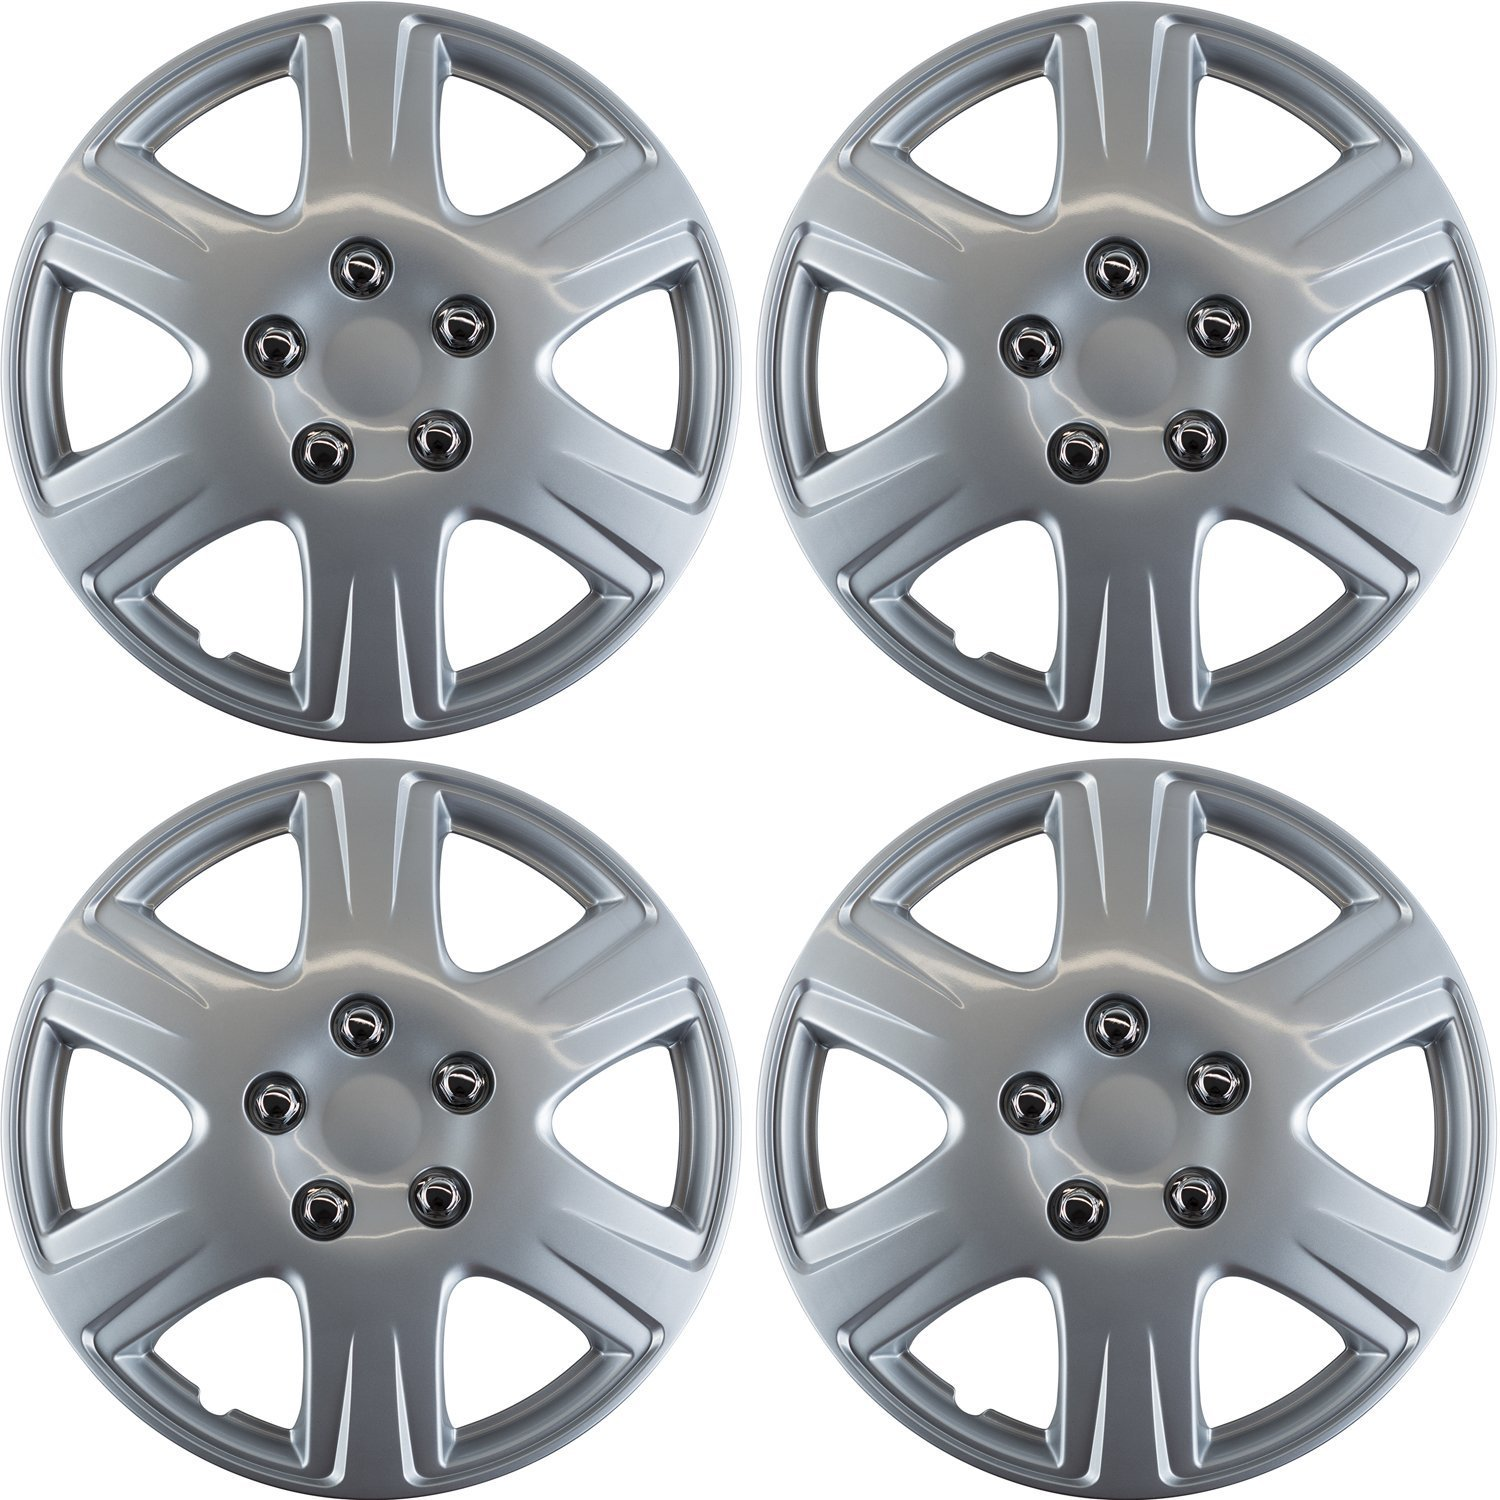 <strong>OxGord Snap-On Hubcaps</strong>